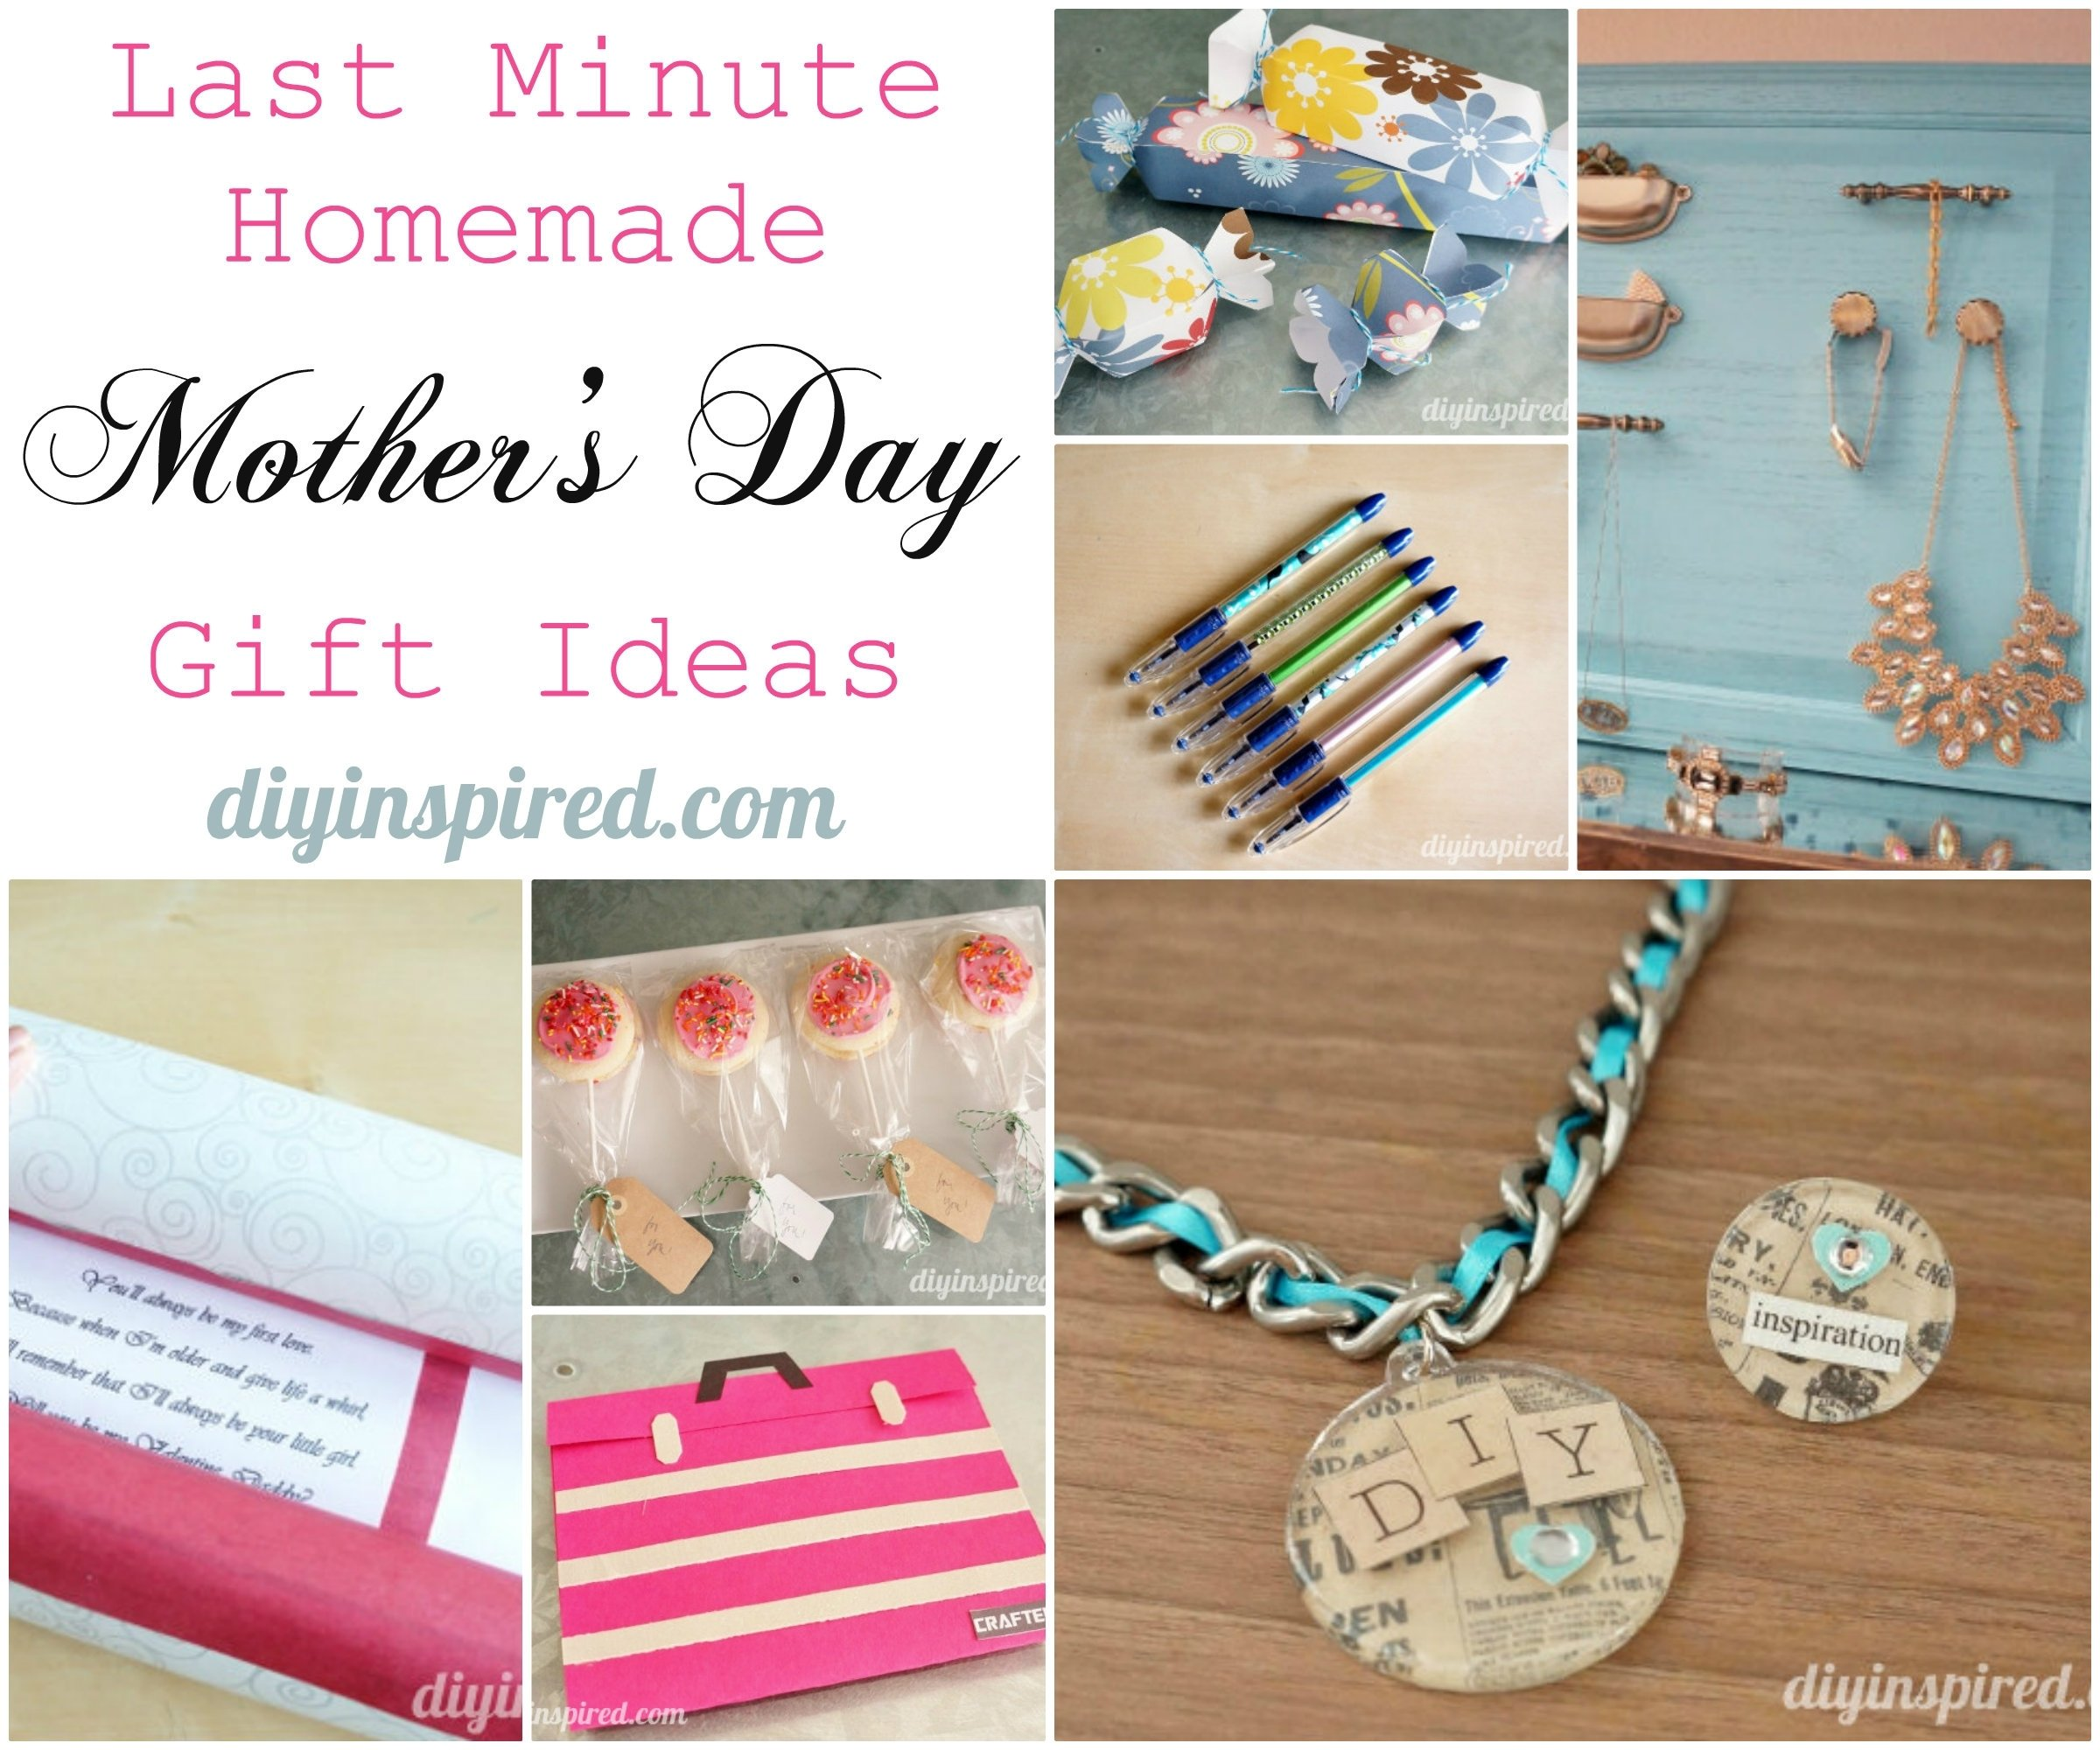 10 Famous Last Minute Gift Ideas For Mom last minute homemade mothers day gift ideas diy inspired 8 2021